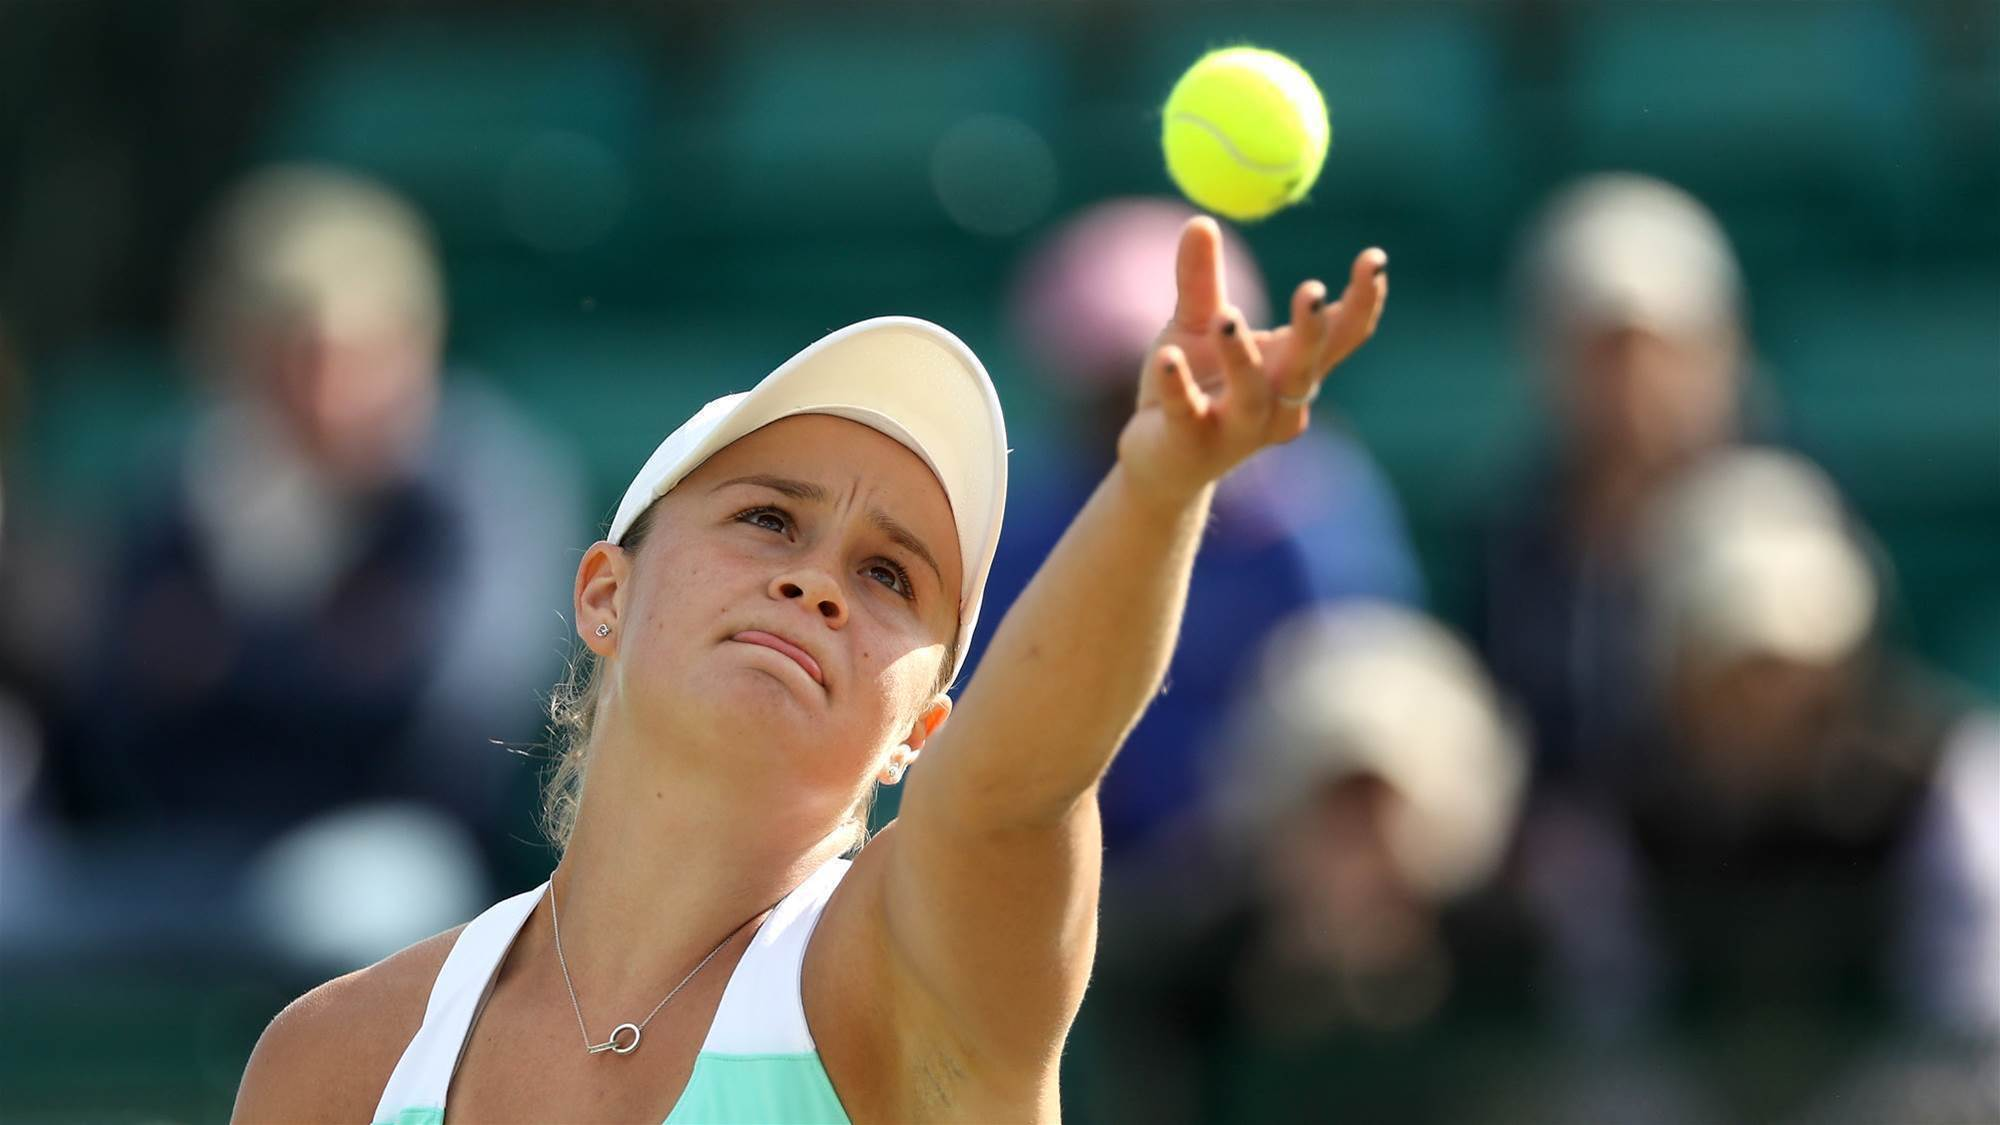 Barty through to quarterfinals